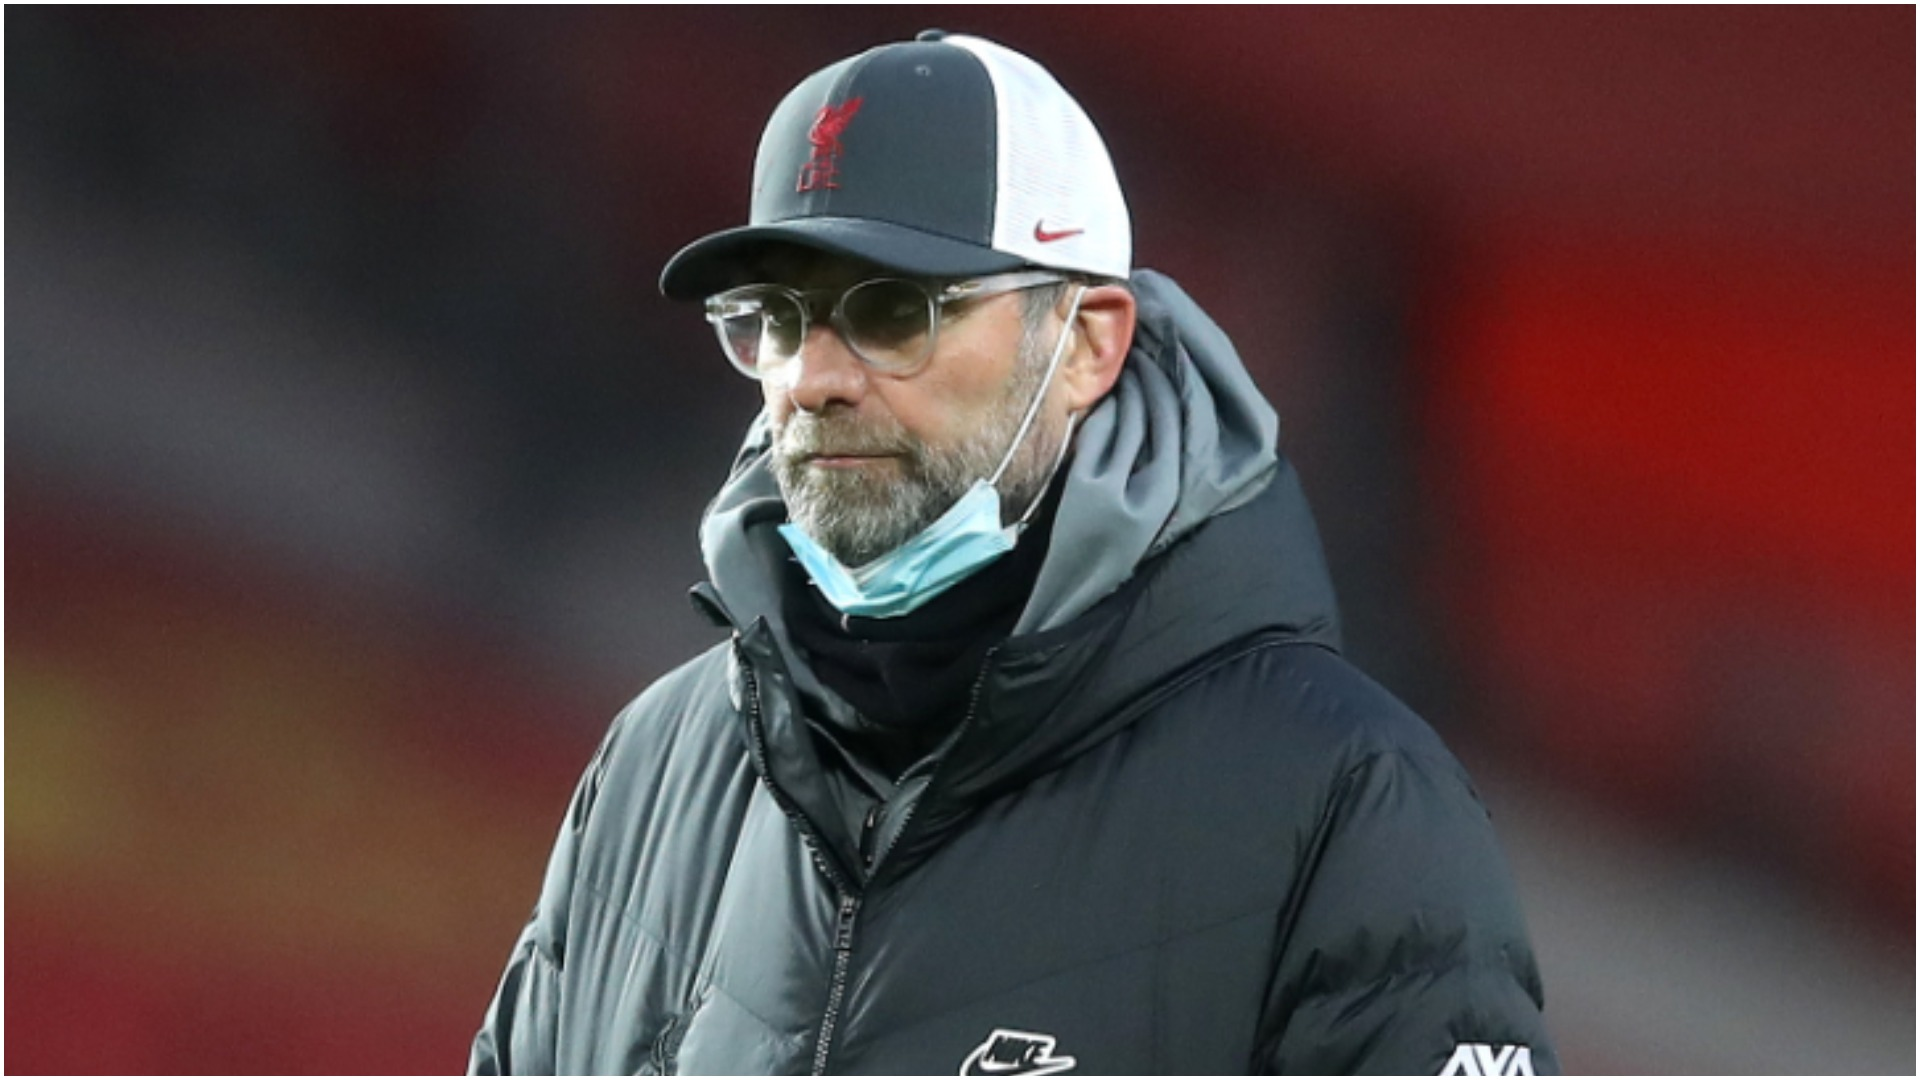 Liverpool still have the potential to fight for the title, insists Klopp